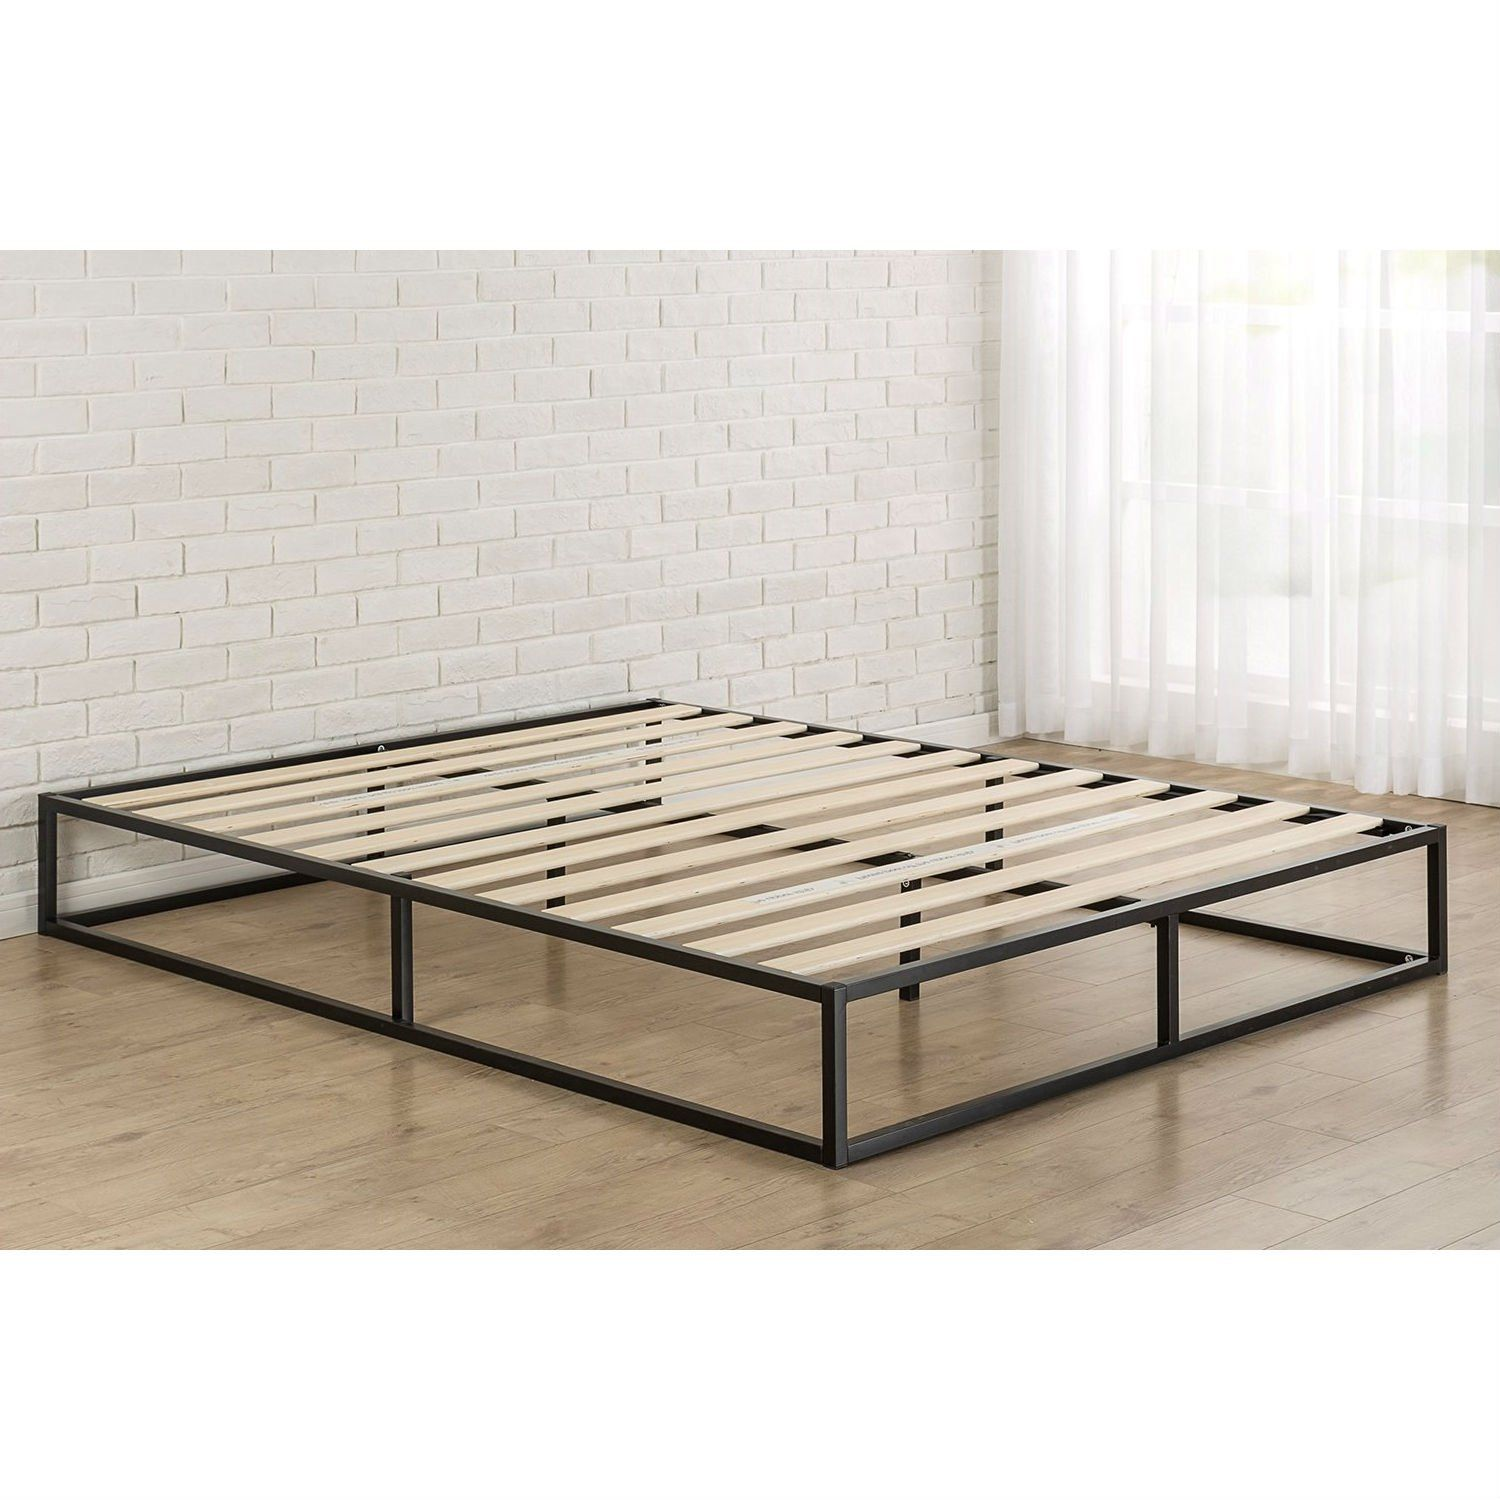 King Size Modern 10 Inch Low Profile Metal Platform Bed Frame With Wood Slats Metal Platform Bed Low Profile Bed Frame Full Size Bed Frame